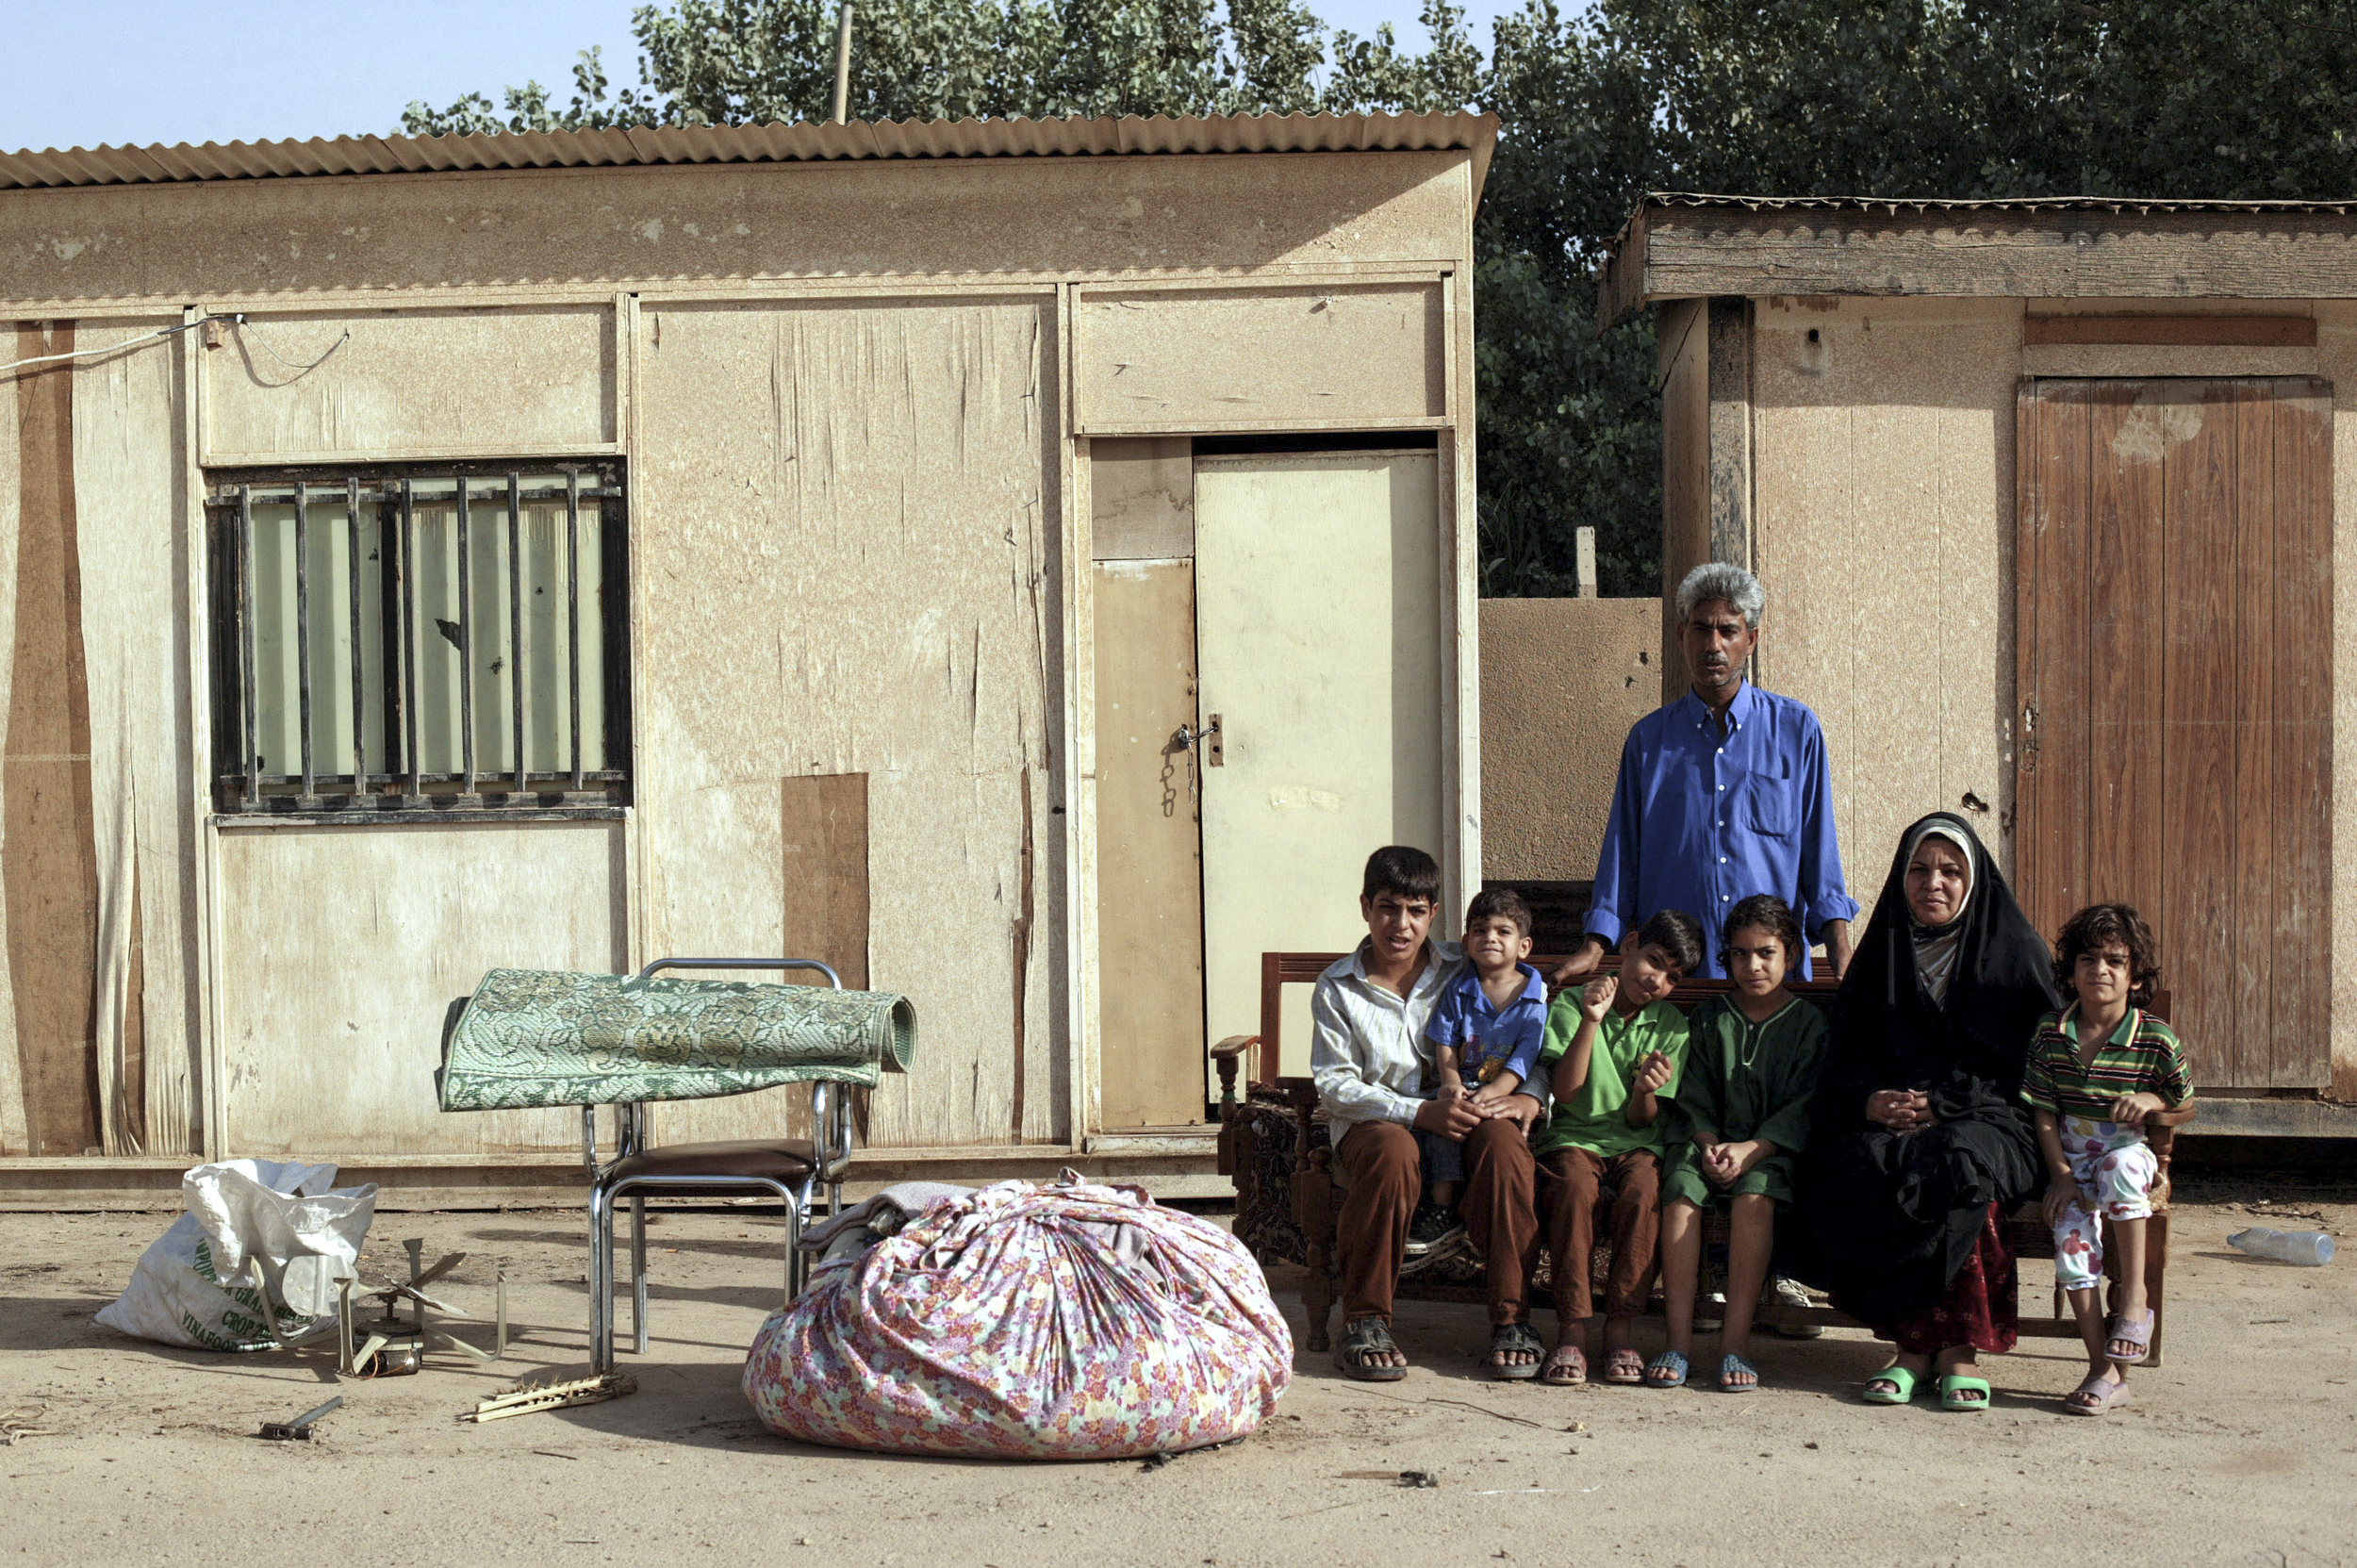 After Sadam Hussein's regime fell, Sadai Ali Khairalah's family was forced out of their home by Iraqi Iranians returning to reclaim their property after a period of exile.